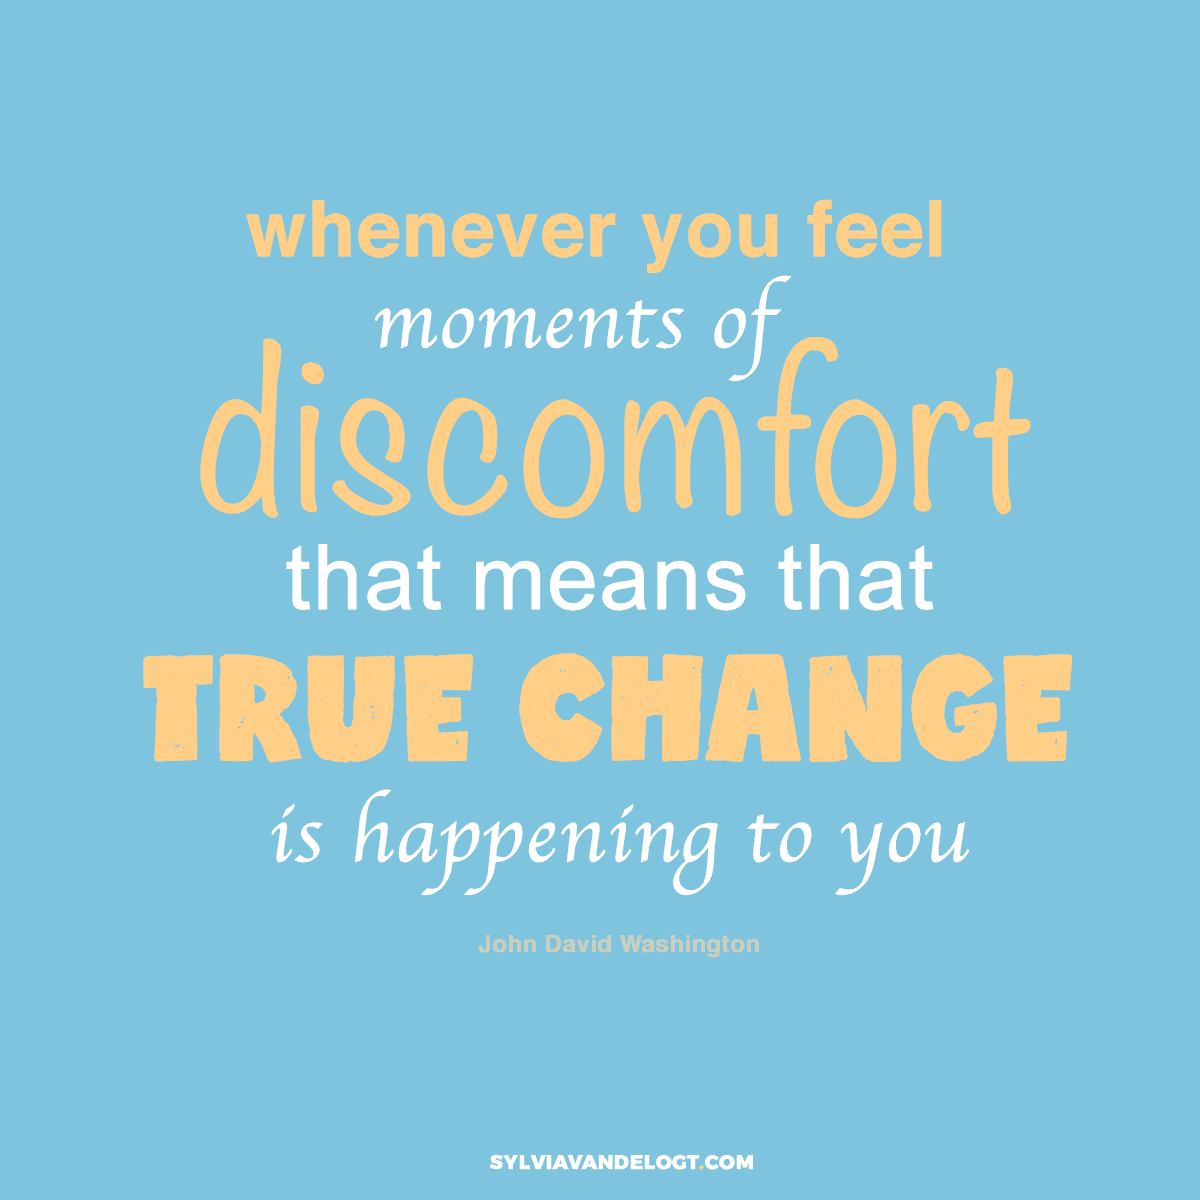 whenever you feel moments of discomfort that means that true change is happening to you   sylviavandelogt.com